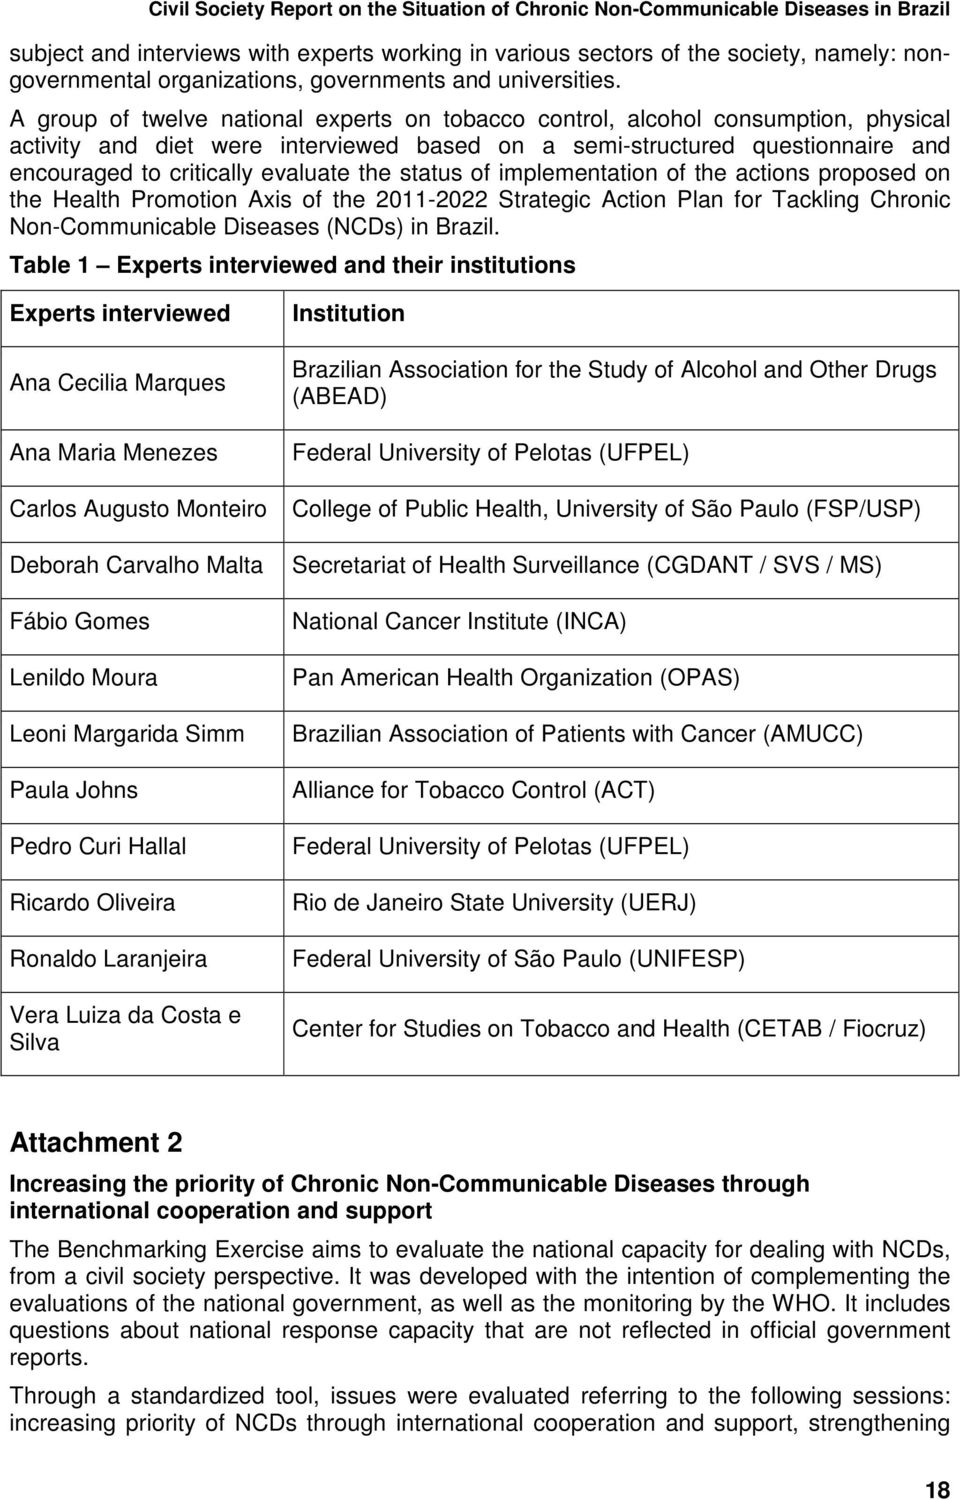 the status of implementation of the actions proposed on the Health Promotion Axis of the 2011-2022 Strategic Action Plan for Tackling Chronic Non-Communicable Diseases (NCDs) in Brazil.